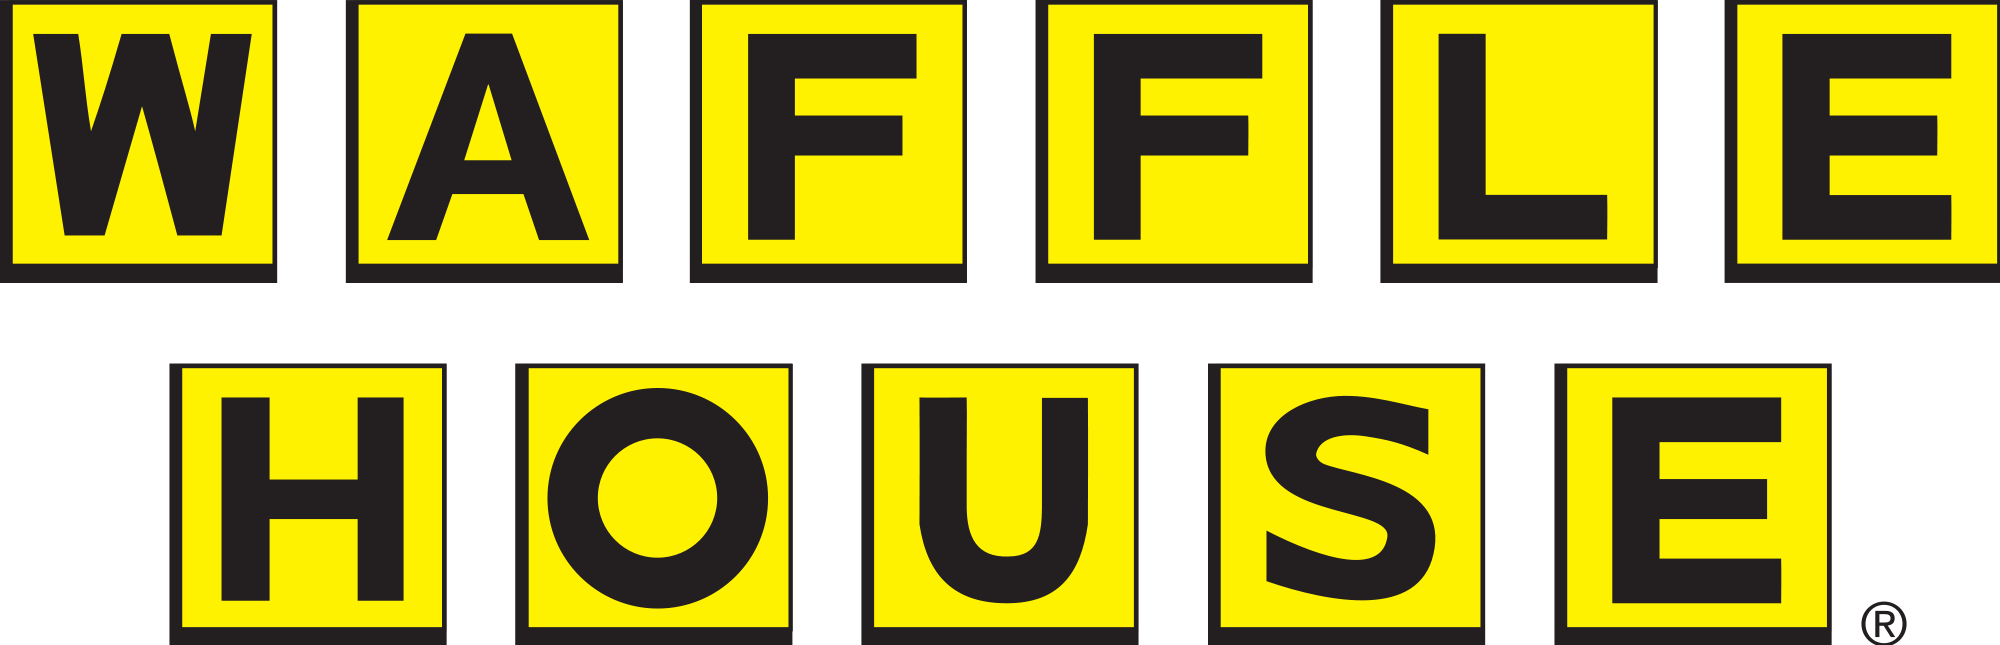 Logo house clipart image freeuse download File:Waffle House Logo.svg - Wikimedia Commons image freeuse download